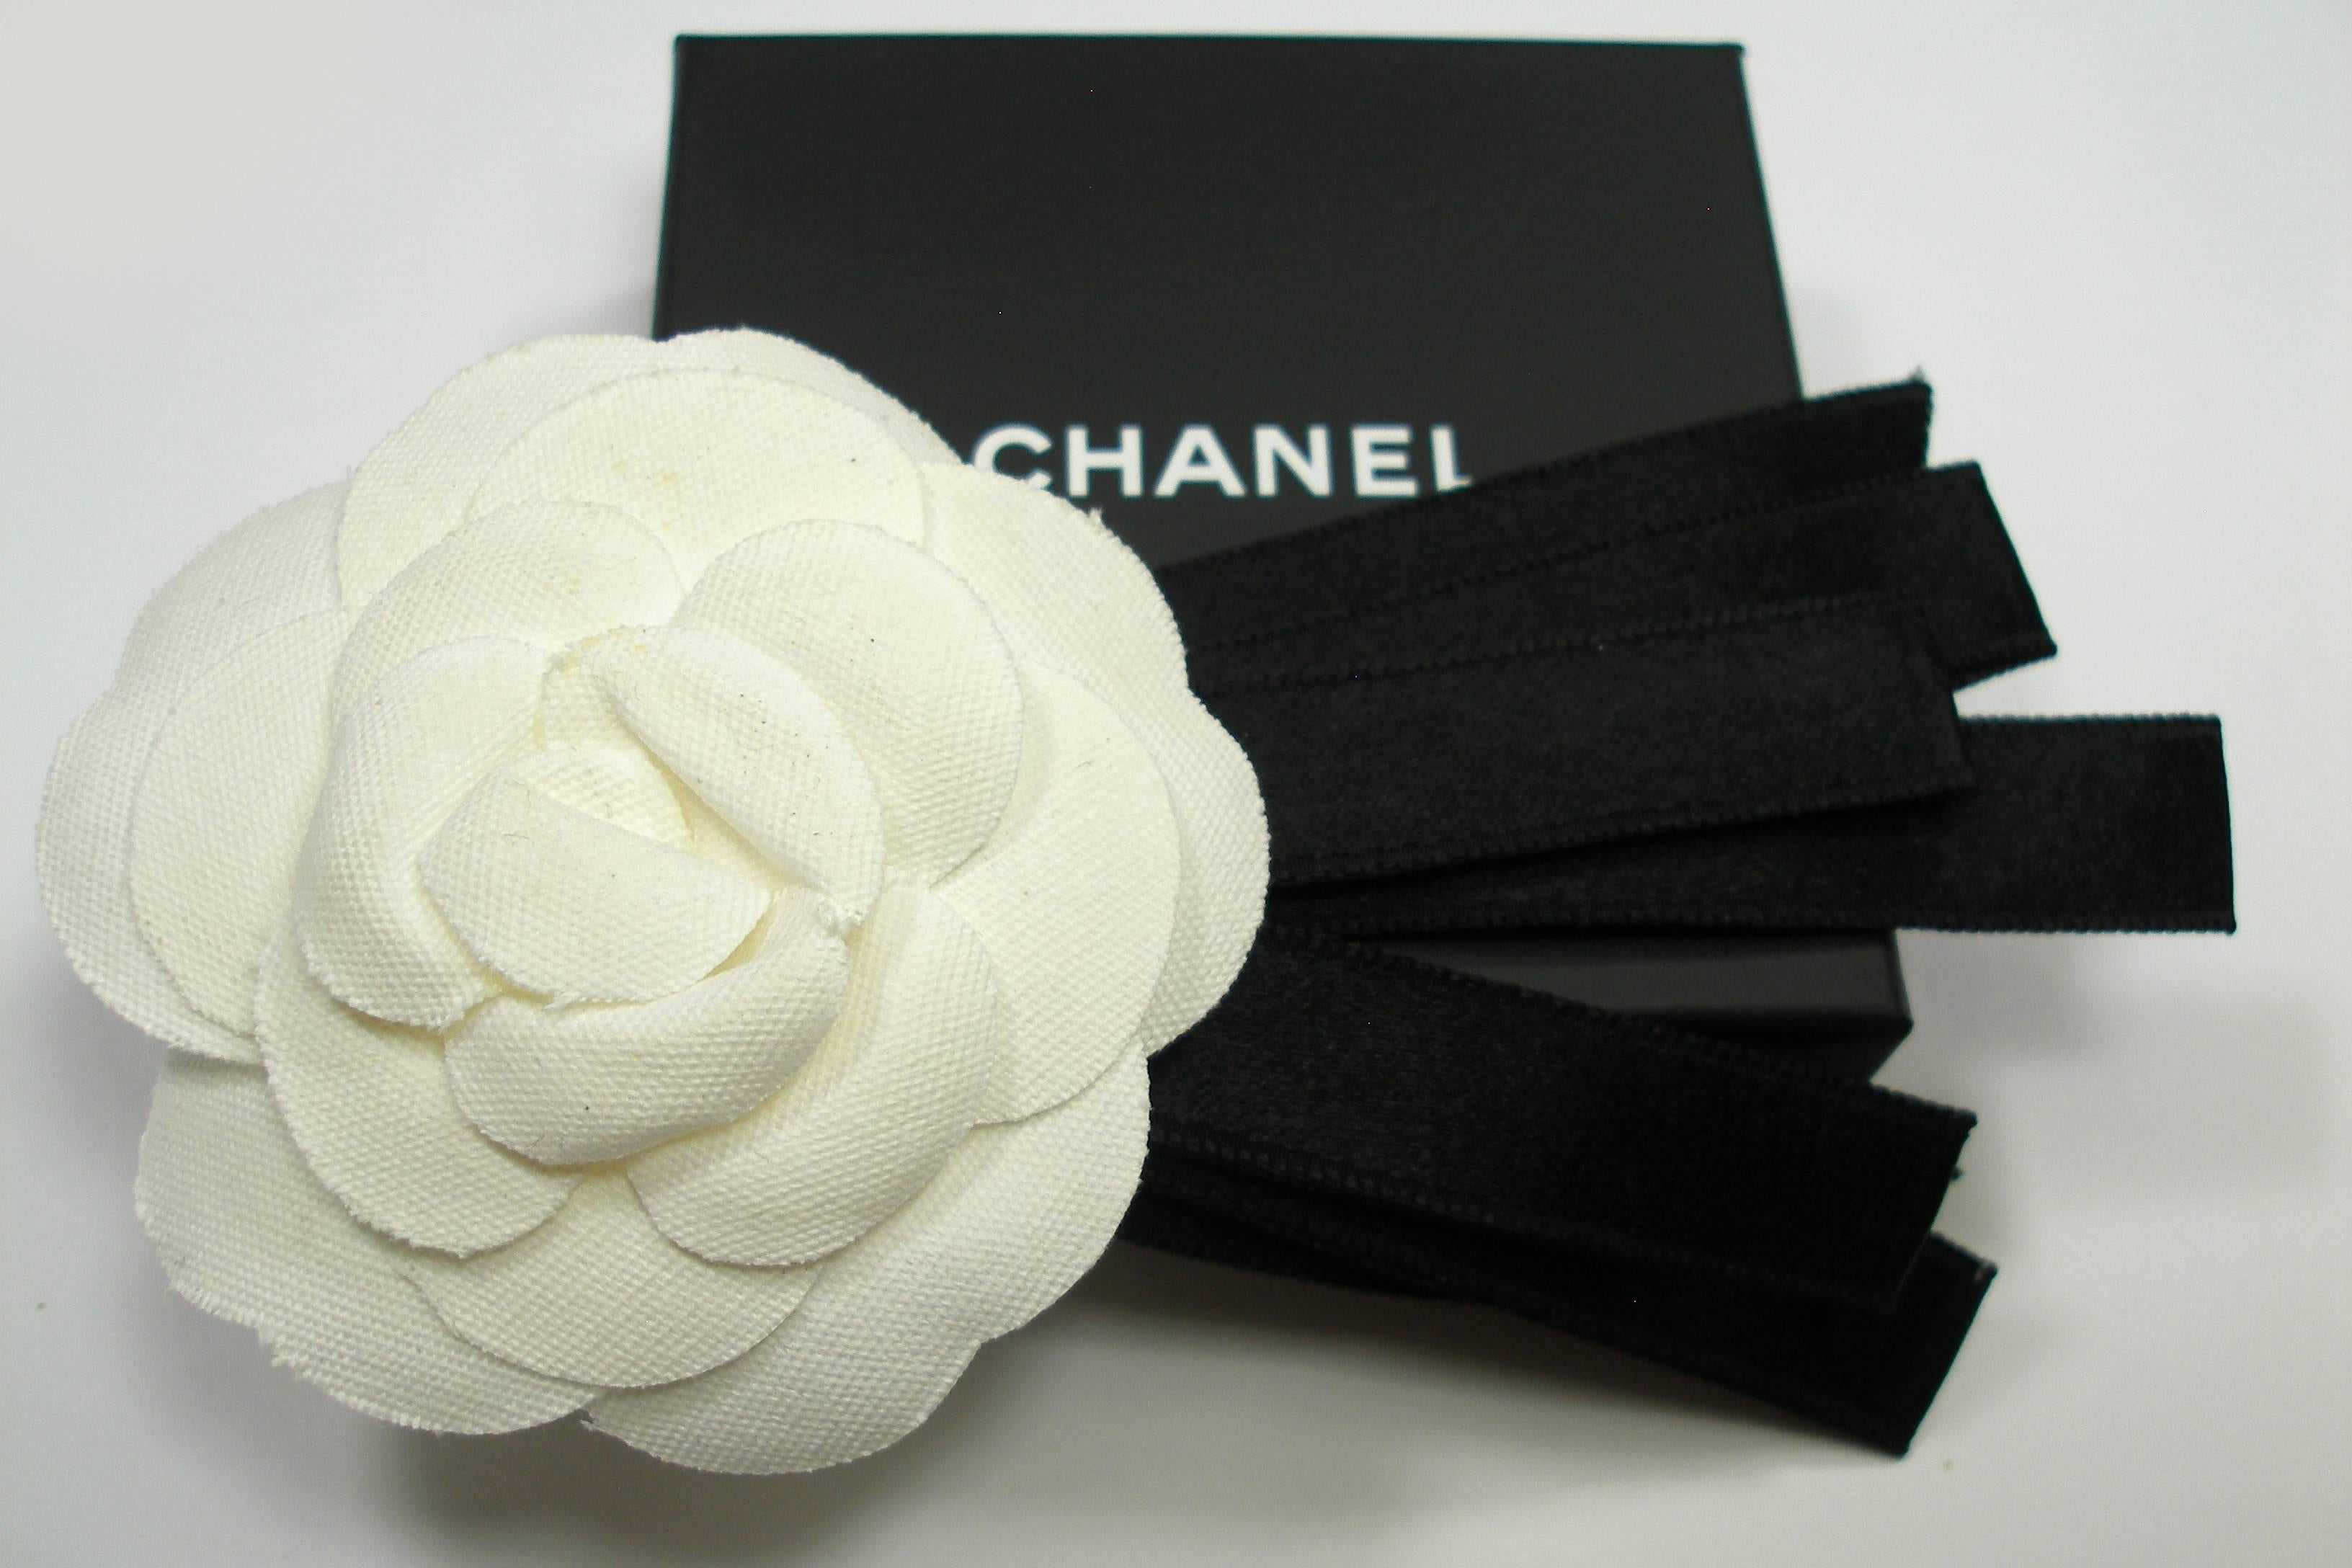 Classic Vintage Chanel Camellia and ribbon brooch   Good condition For Sale  at 1stdibs cb2fa66cc0d